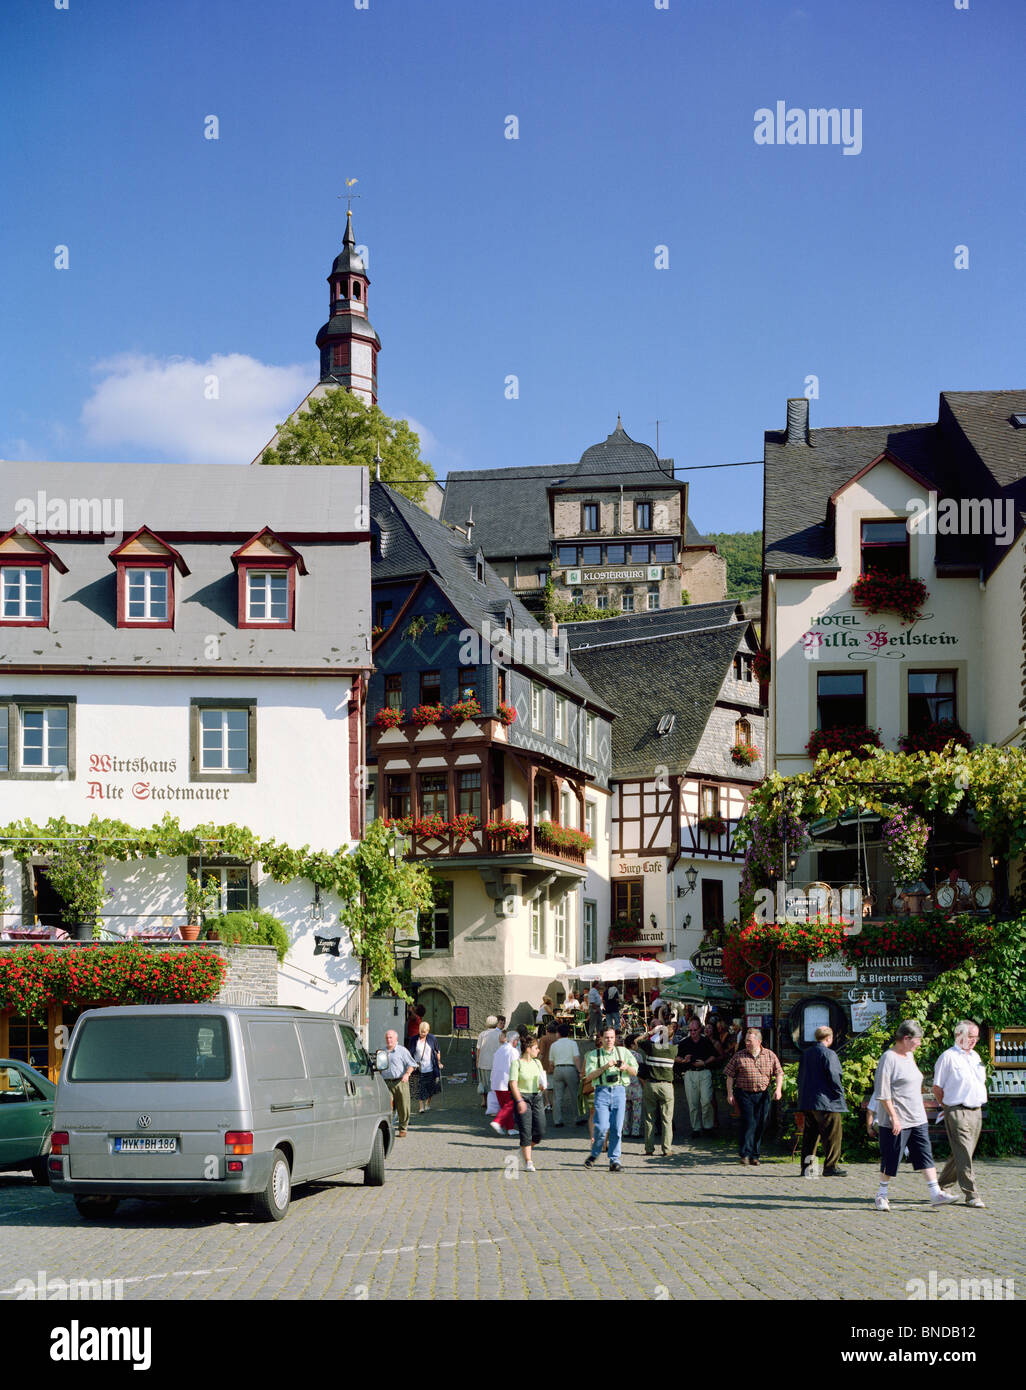 Medieval town Beilstein Mosel Germany - Stock Image